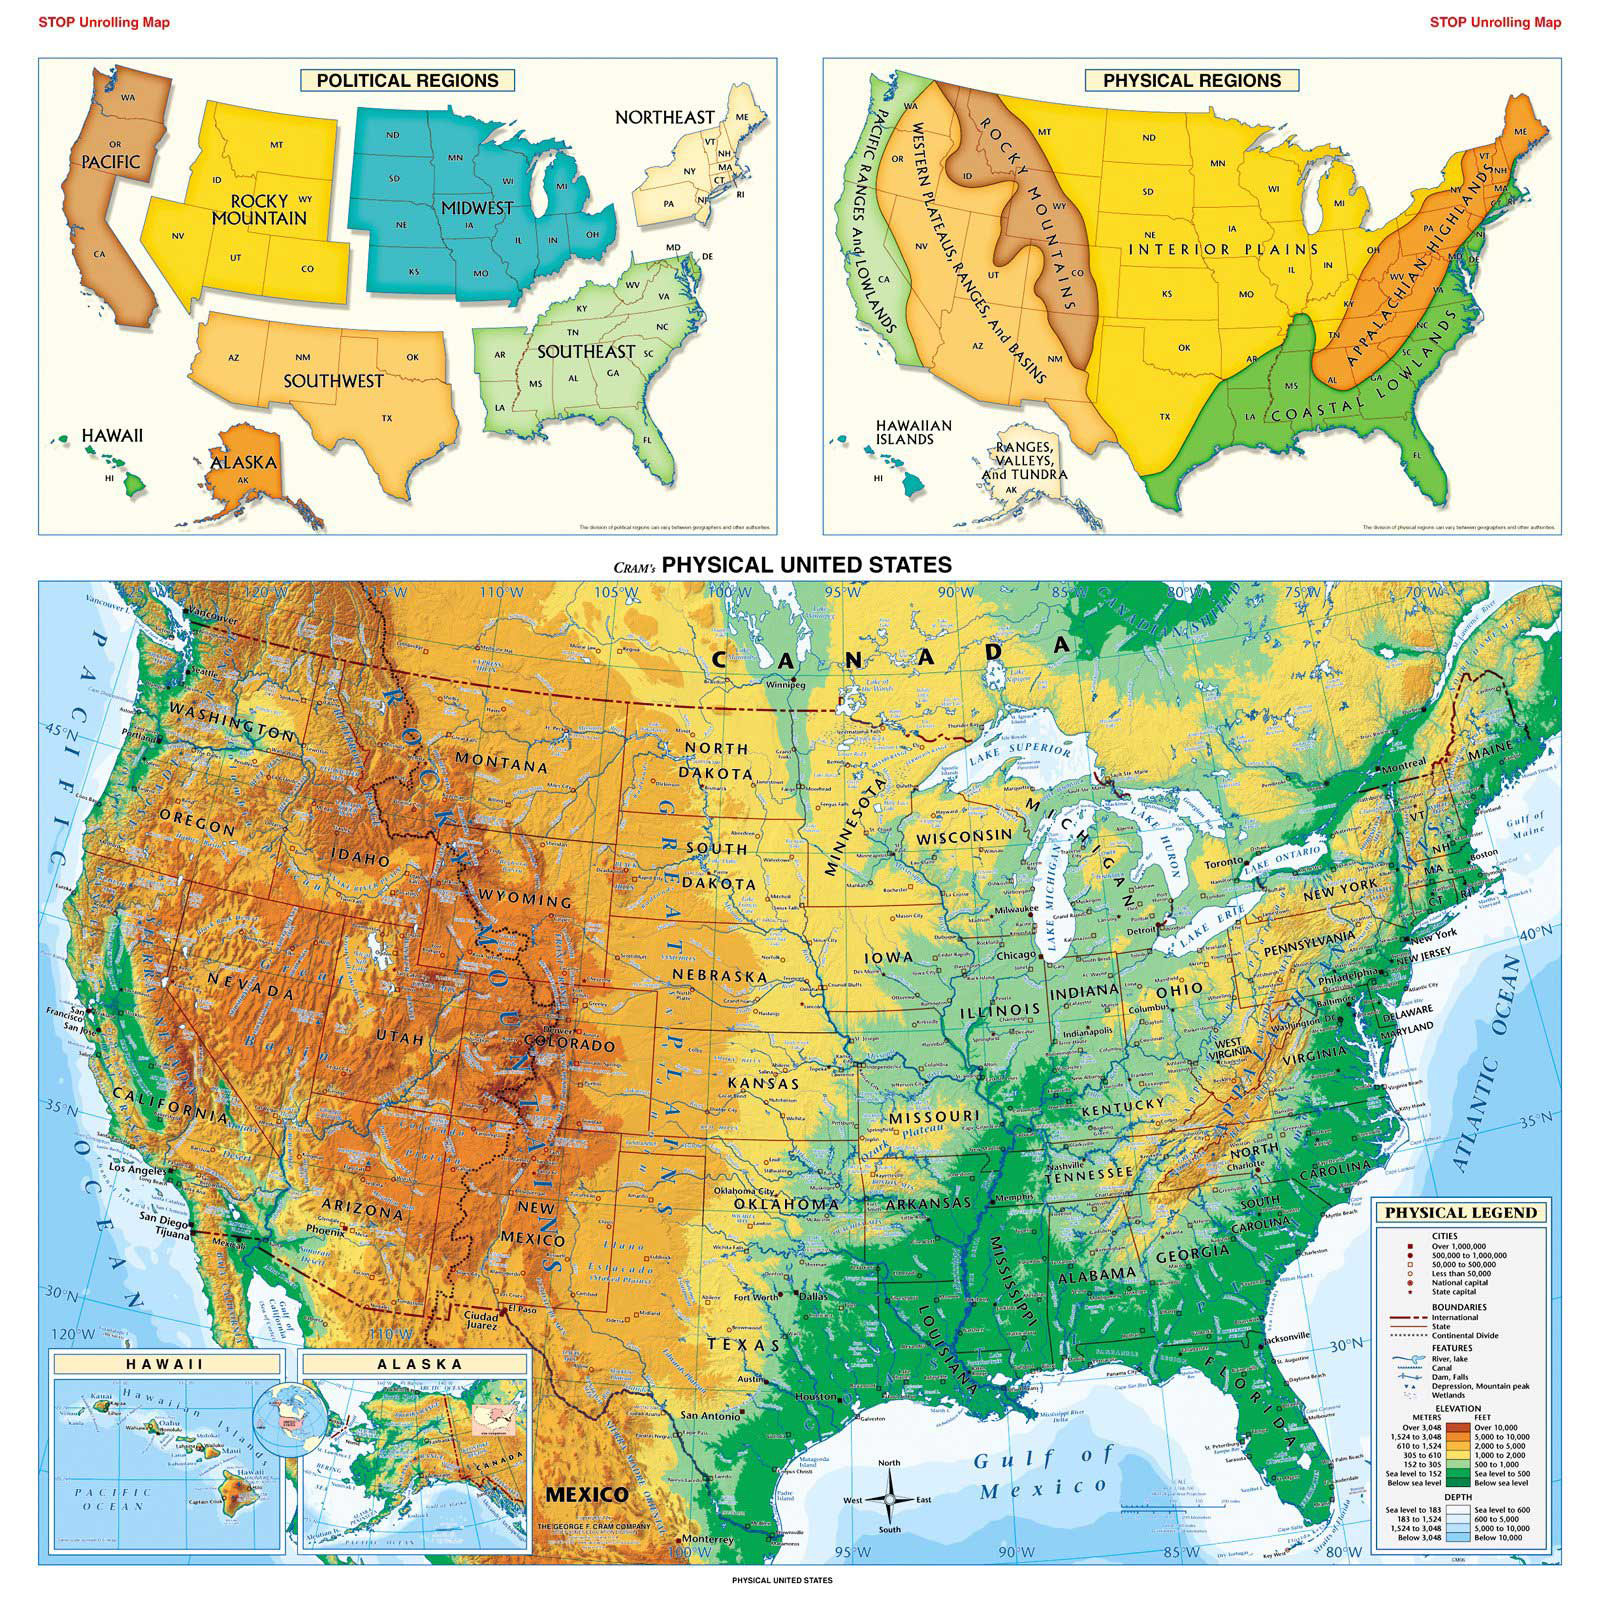 Large Detailed Physical Map Of The USA The USA Large Detailed - Usa map physical